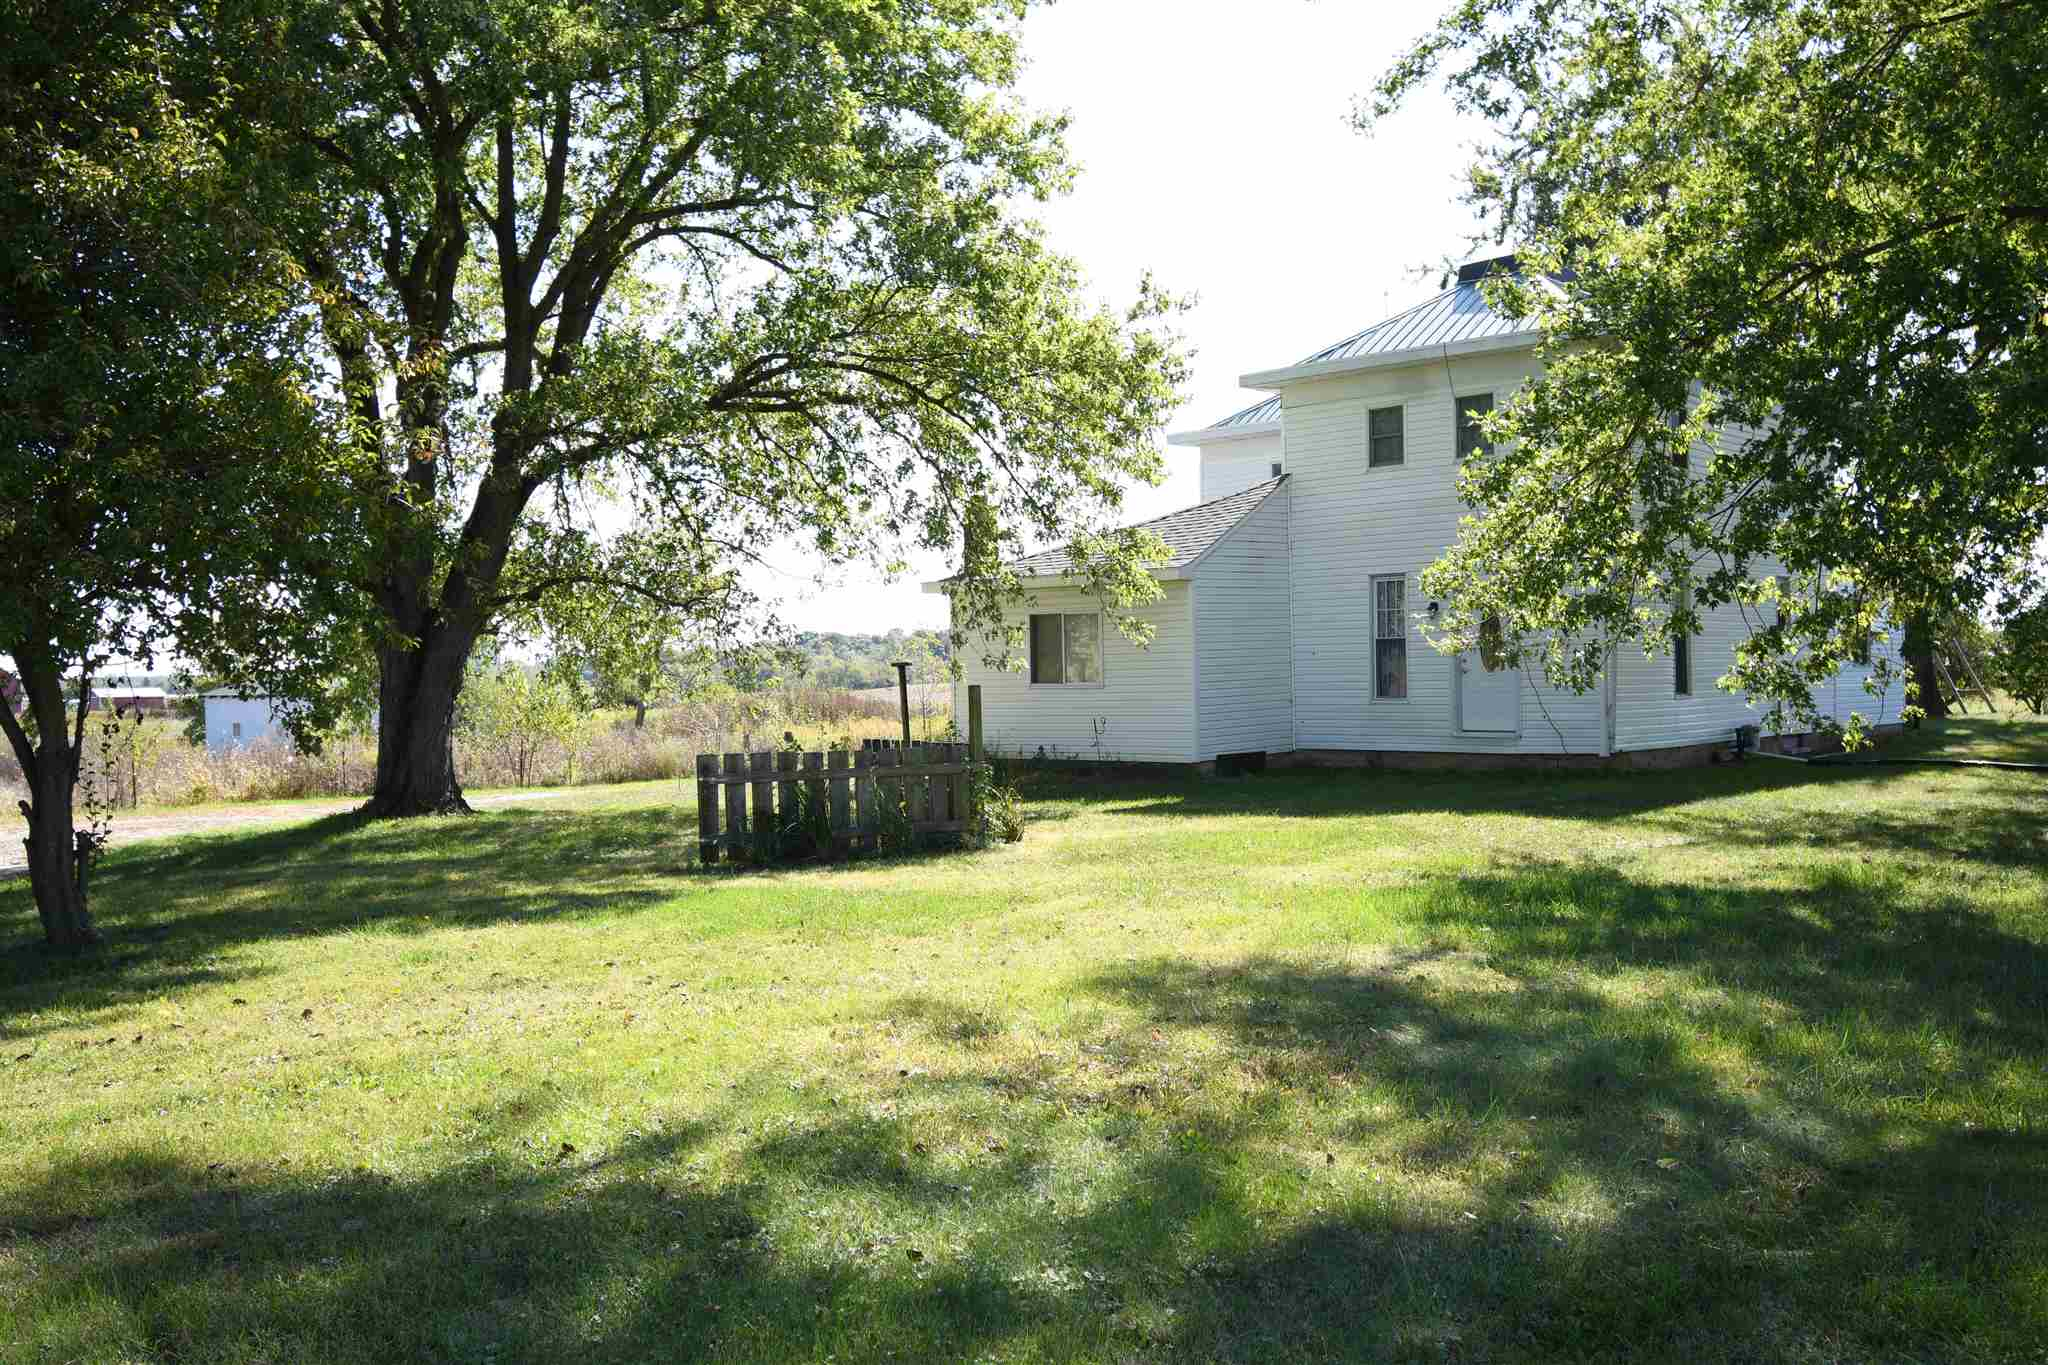 7587 W 200 S Road, Andrews, IN 46702